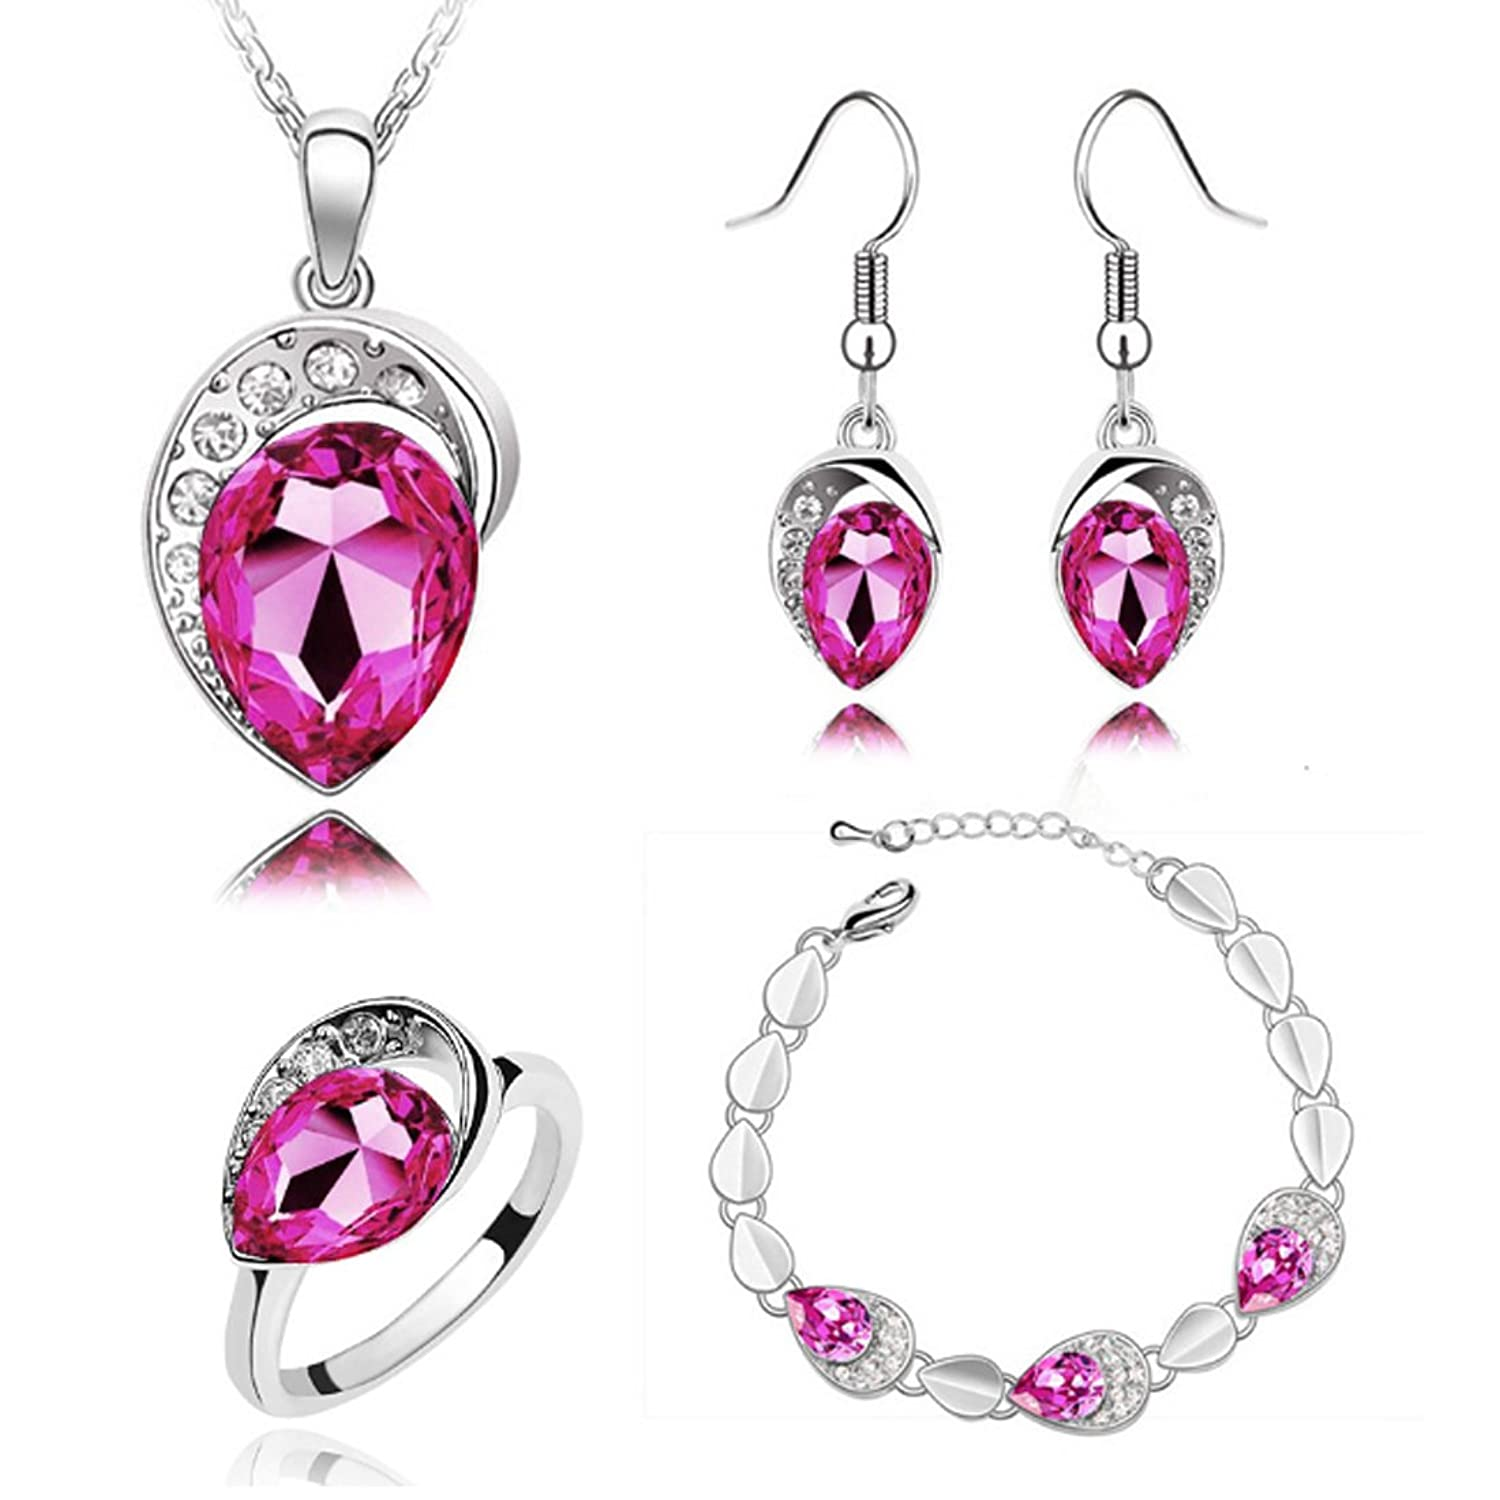 MAFMO Women Water Drop Jewelry Set Party Wedding Necklace Bracelet Earrings Ring